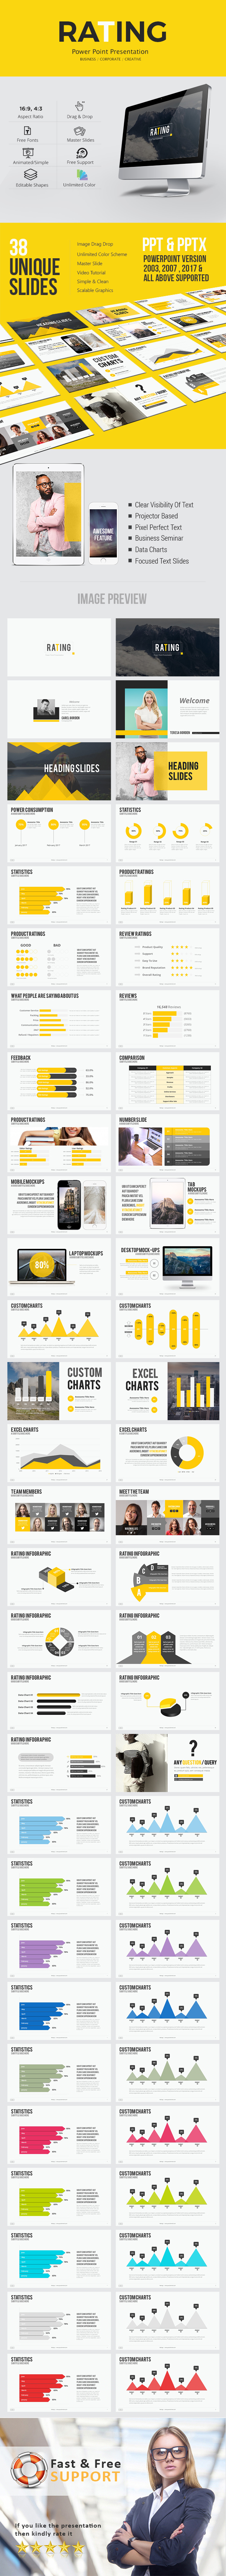 Rating Power Point Presentation - Creative PowerPoint Templates